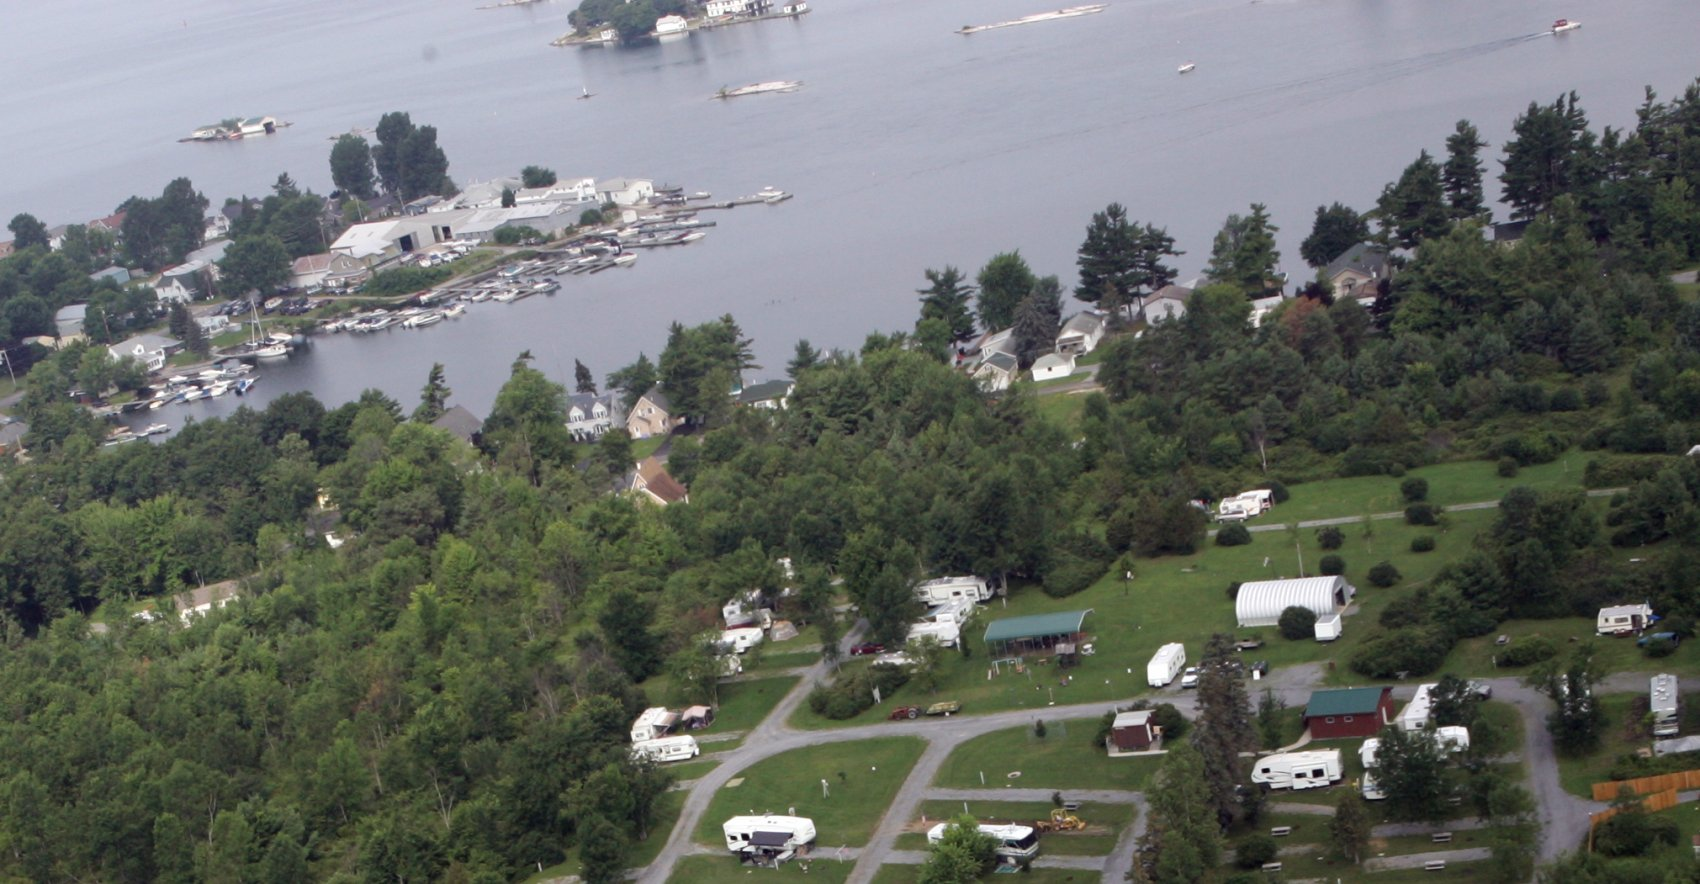 Wifi Service Plans >> 1000 Islands Campground - Let's go camping!